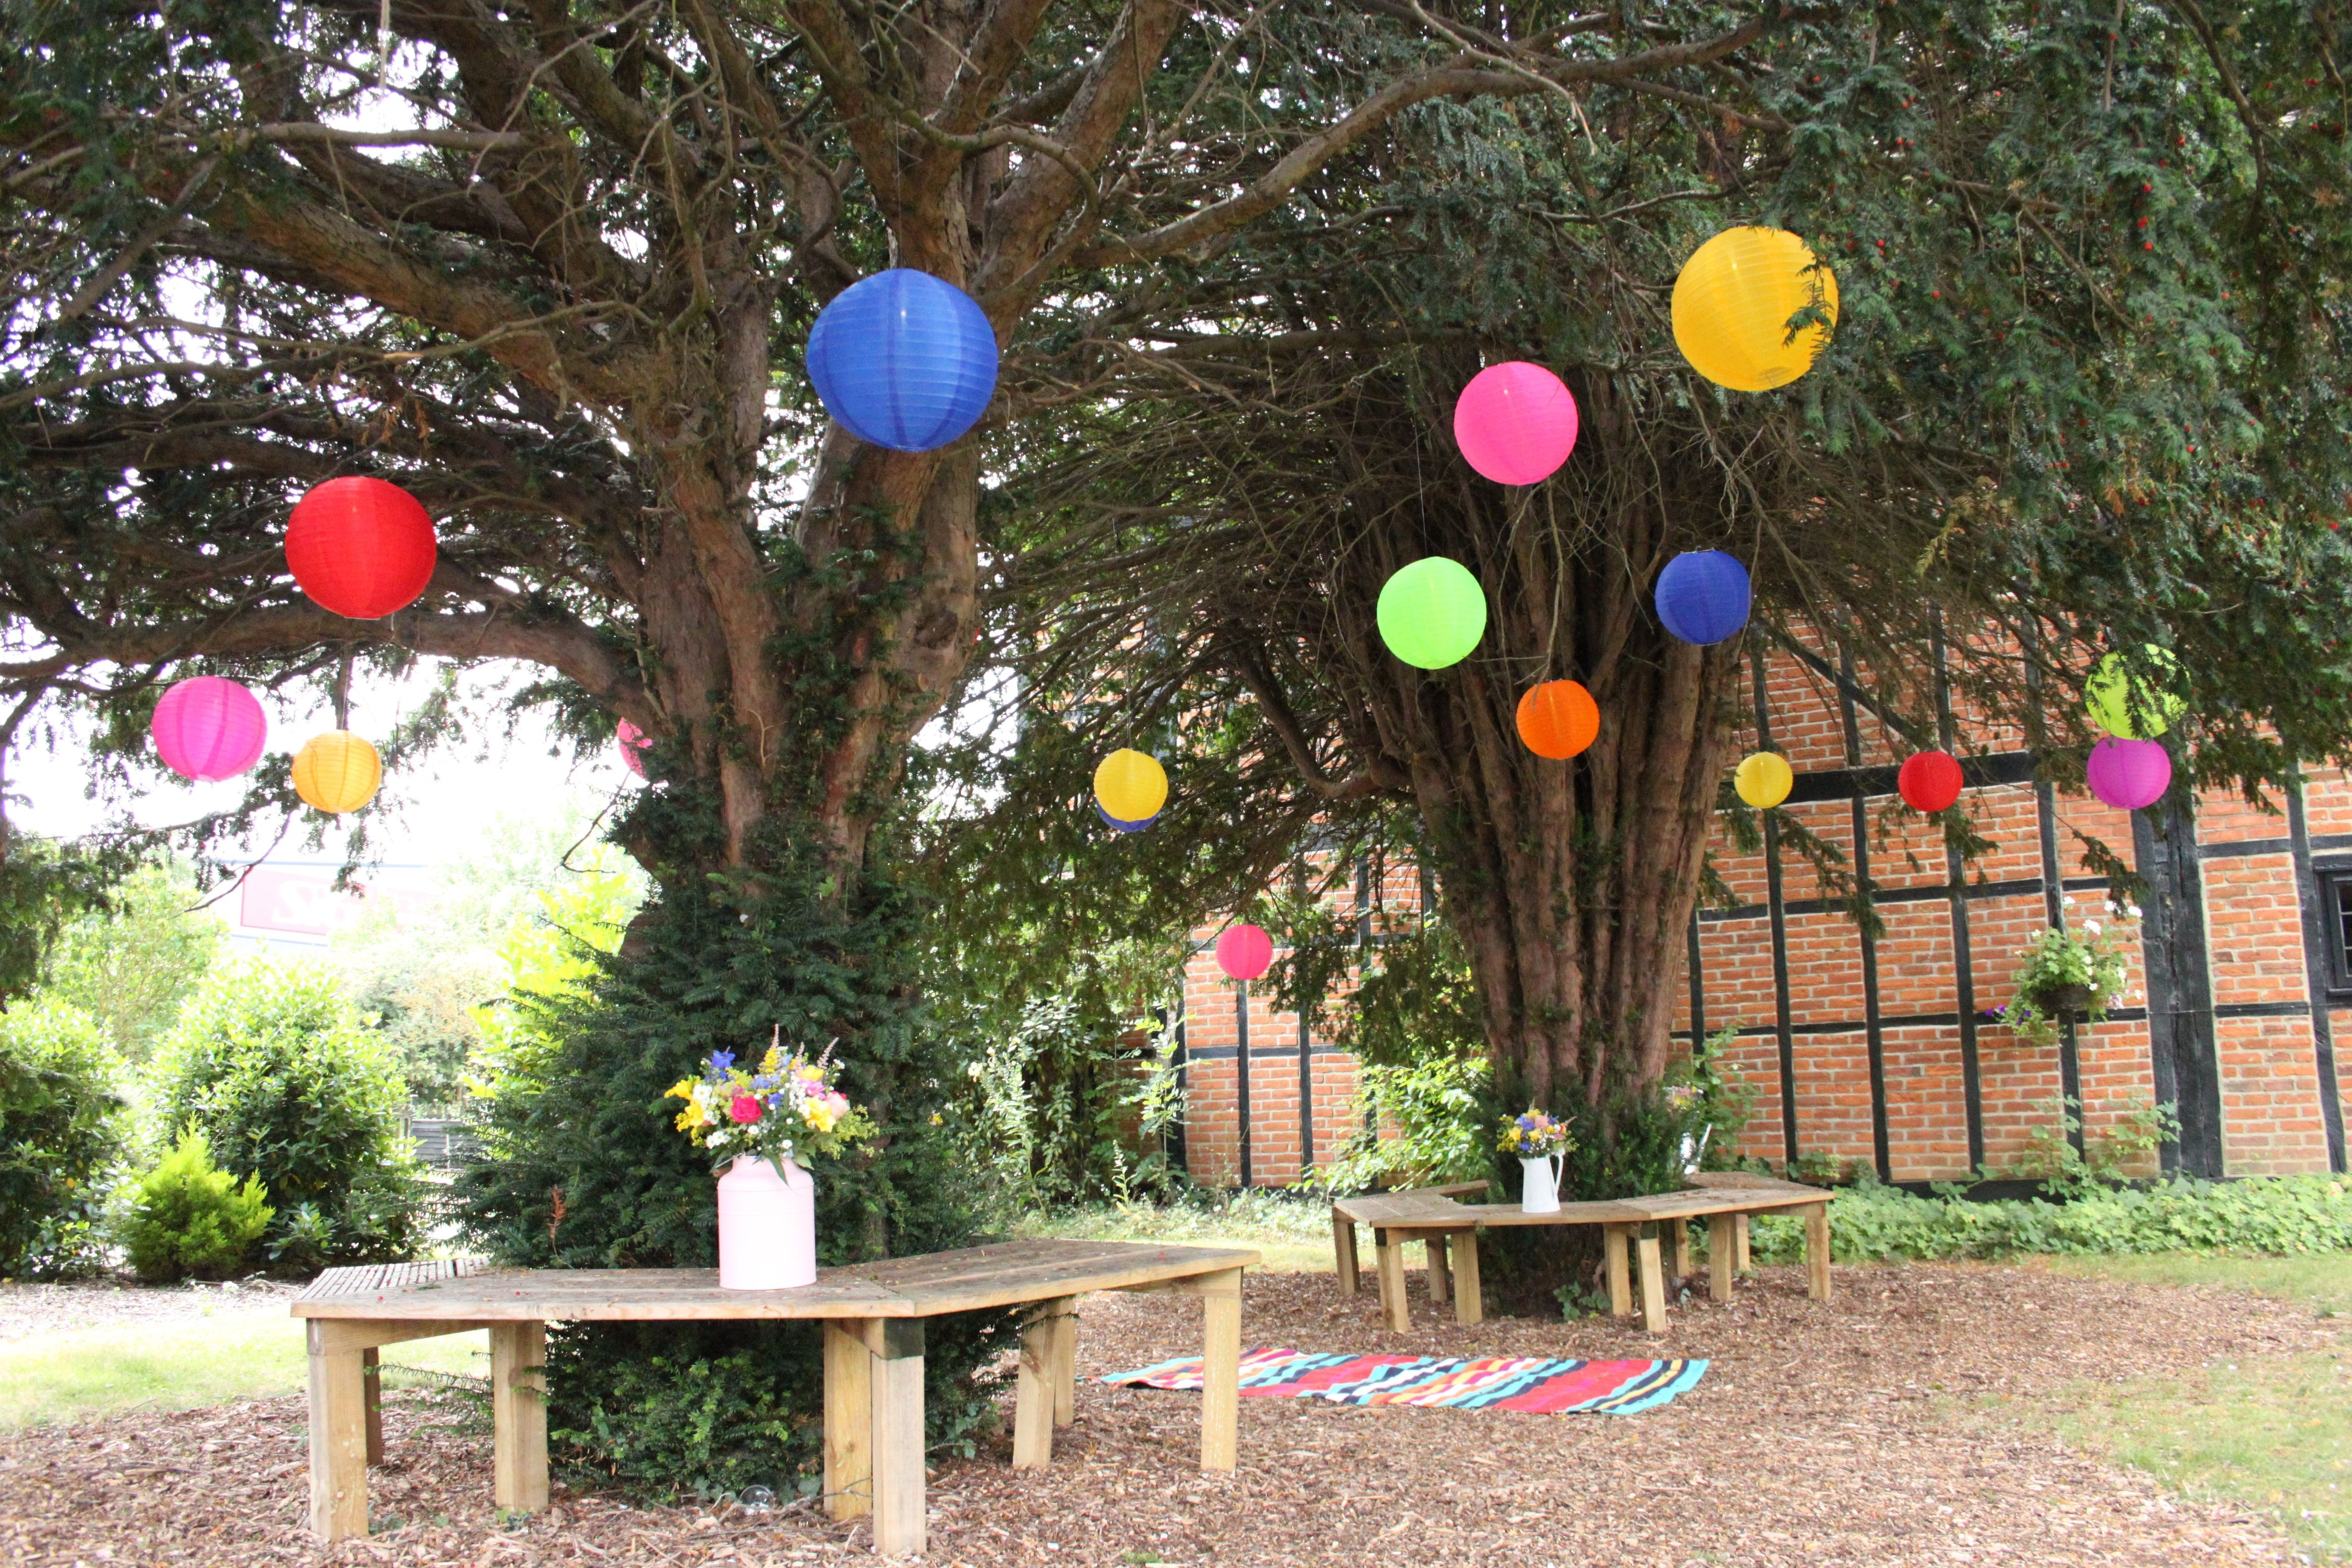 Mad Hatters Outdoor Coloured Nylon Lanterns Hanging Randomly In The pertaining to Outdoor Nylon Lanterns (Image 9 of 20)